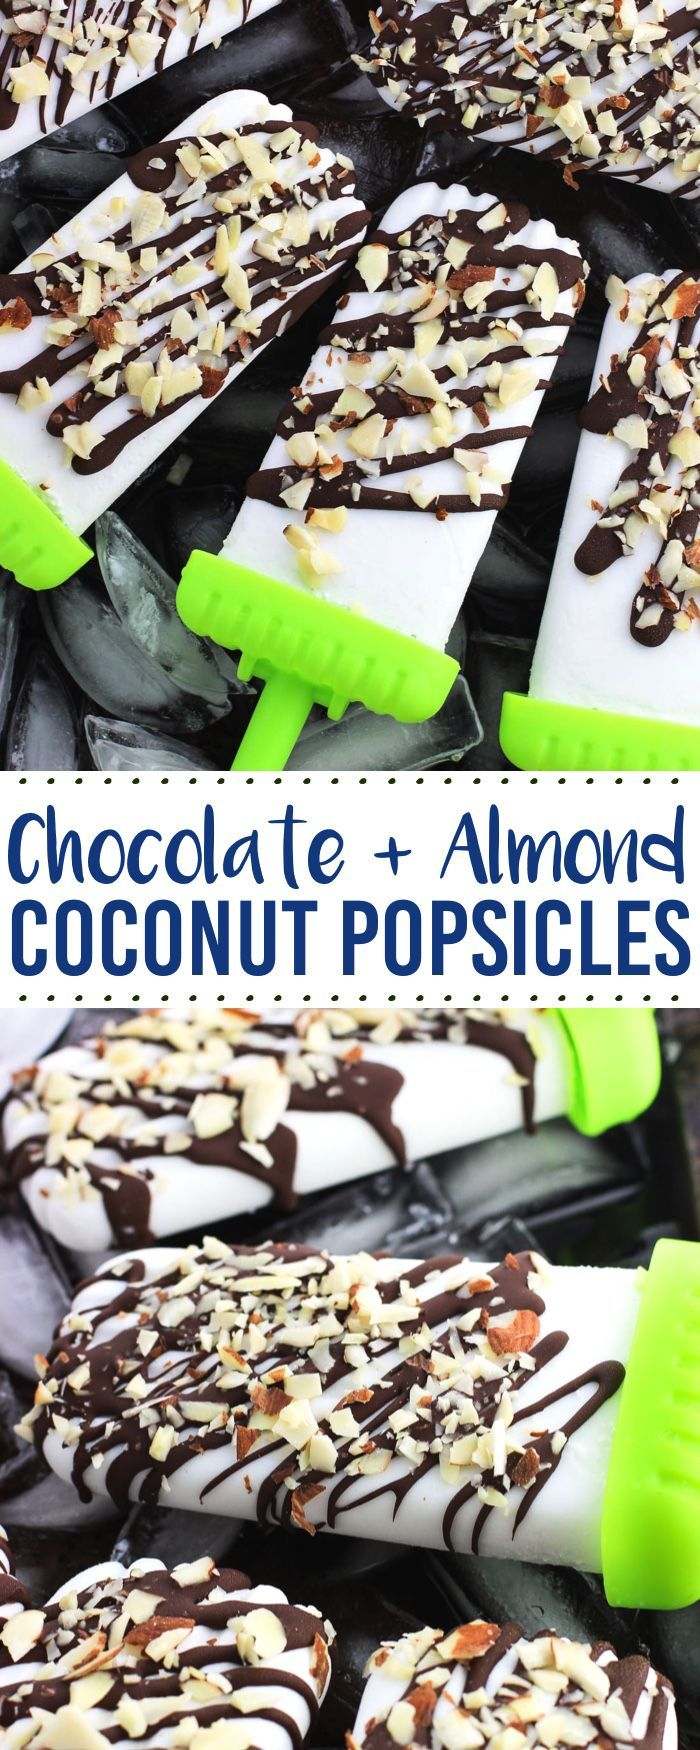 These homemade coconut popsicles are EASY! They're drizzled with fast-setting dark chocolate and almonds and taste just like a frozen Almond Joy bar.